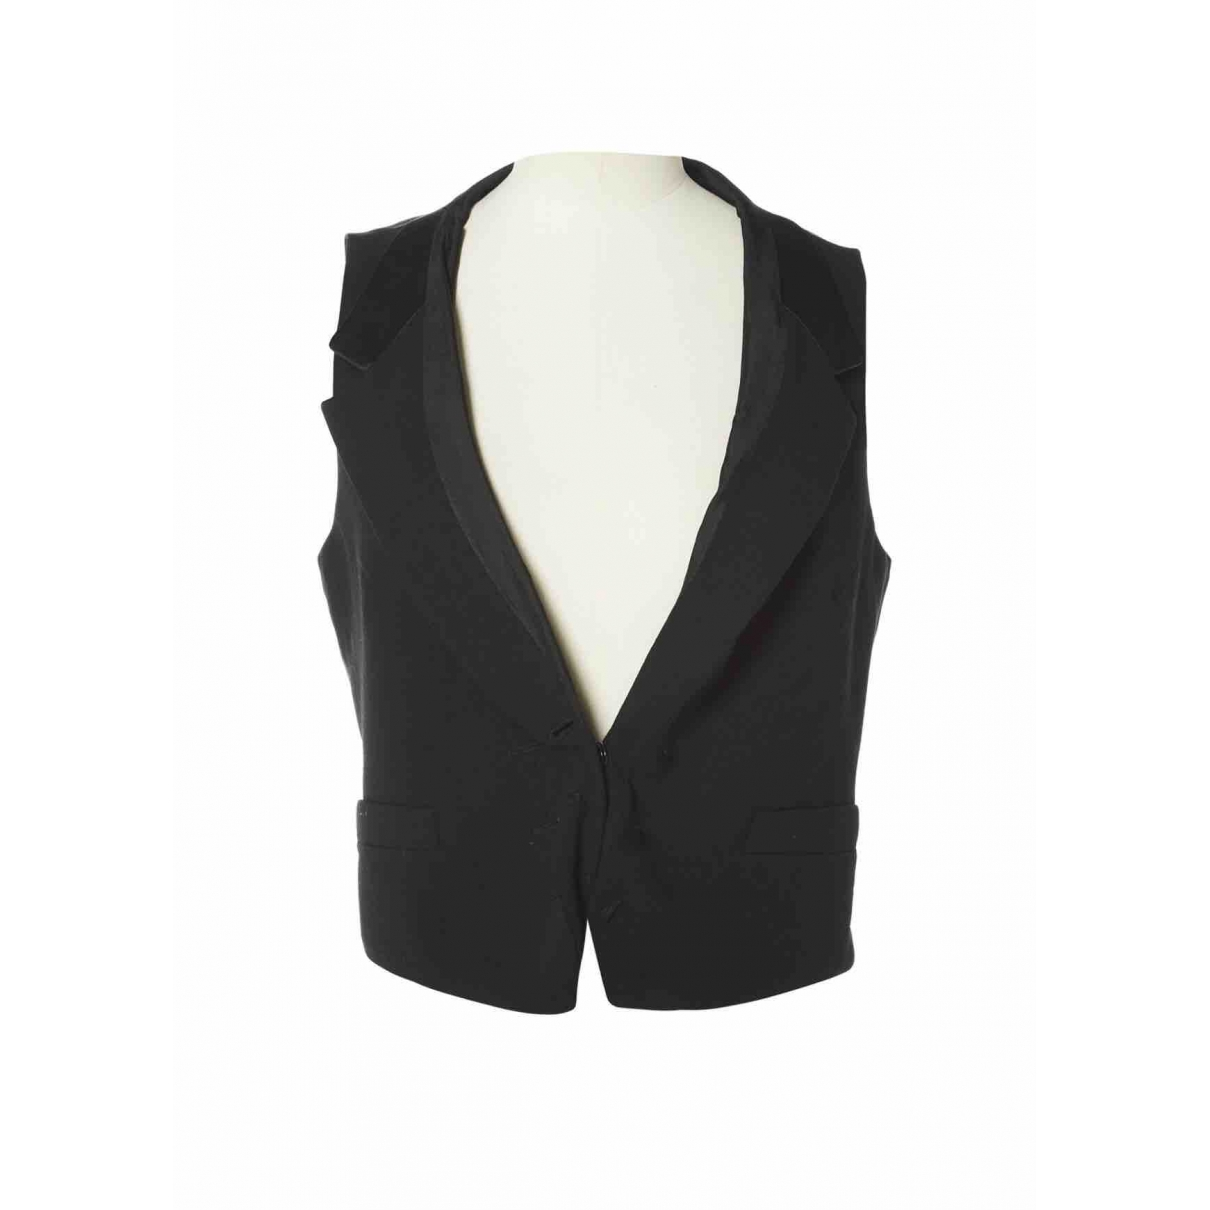 Maison Martin Margiela \N Black Wool jacket for Women 40 IT